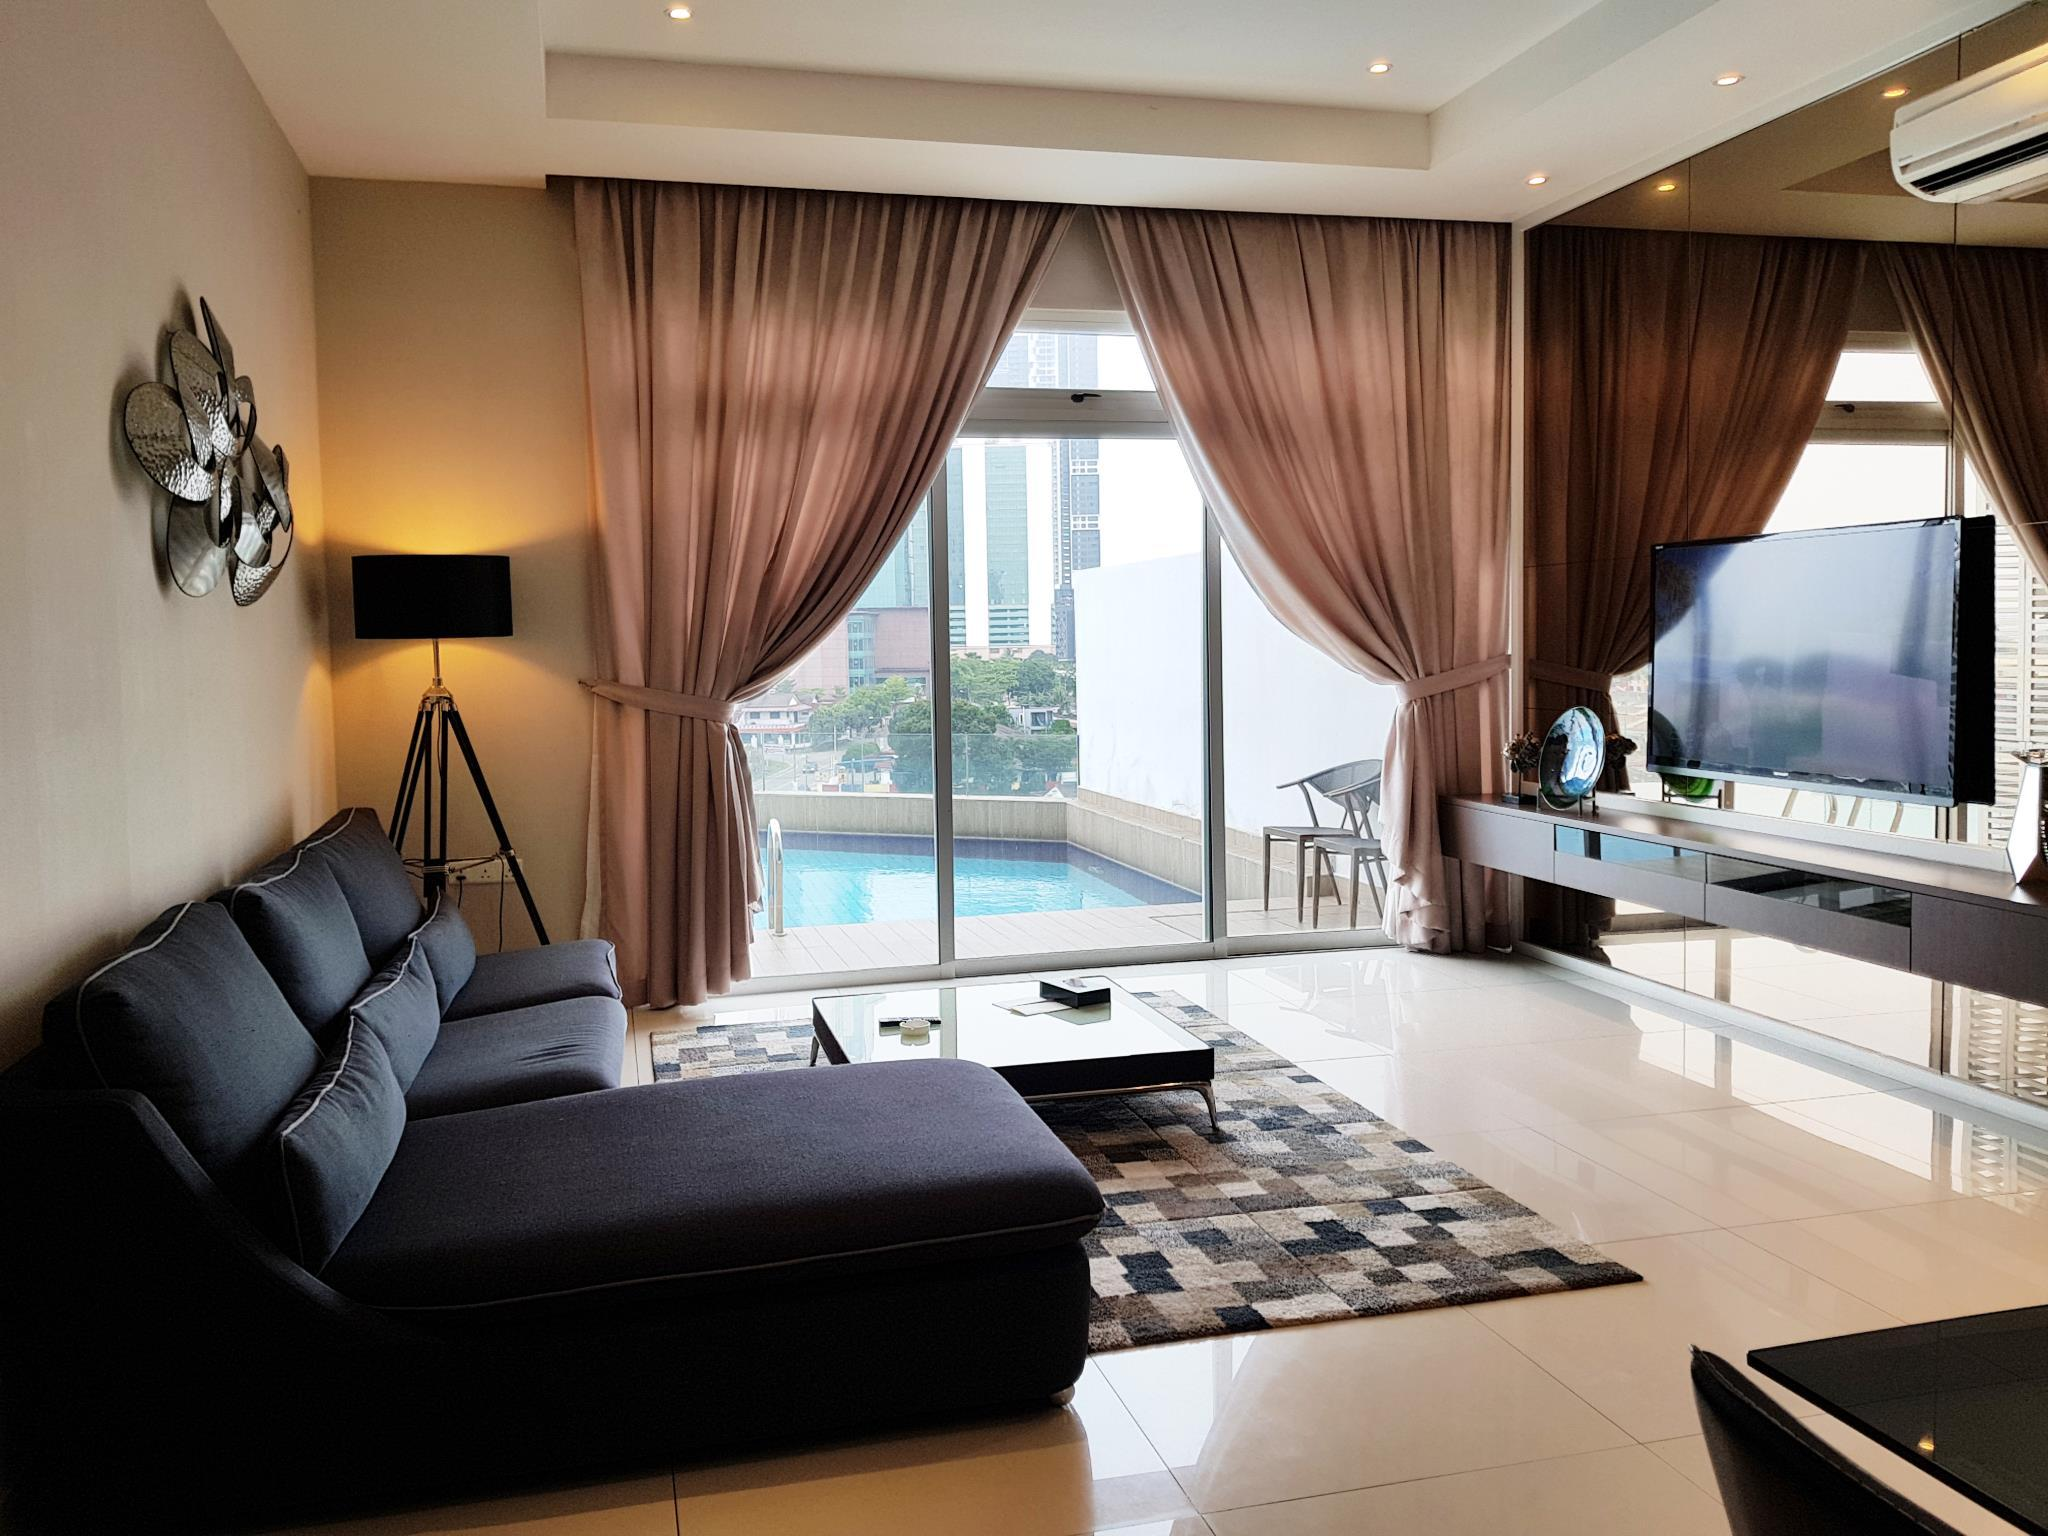 2-Bedroom Premier Apartment with 1 King Bed, 1 Queen Bed and Private Pool